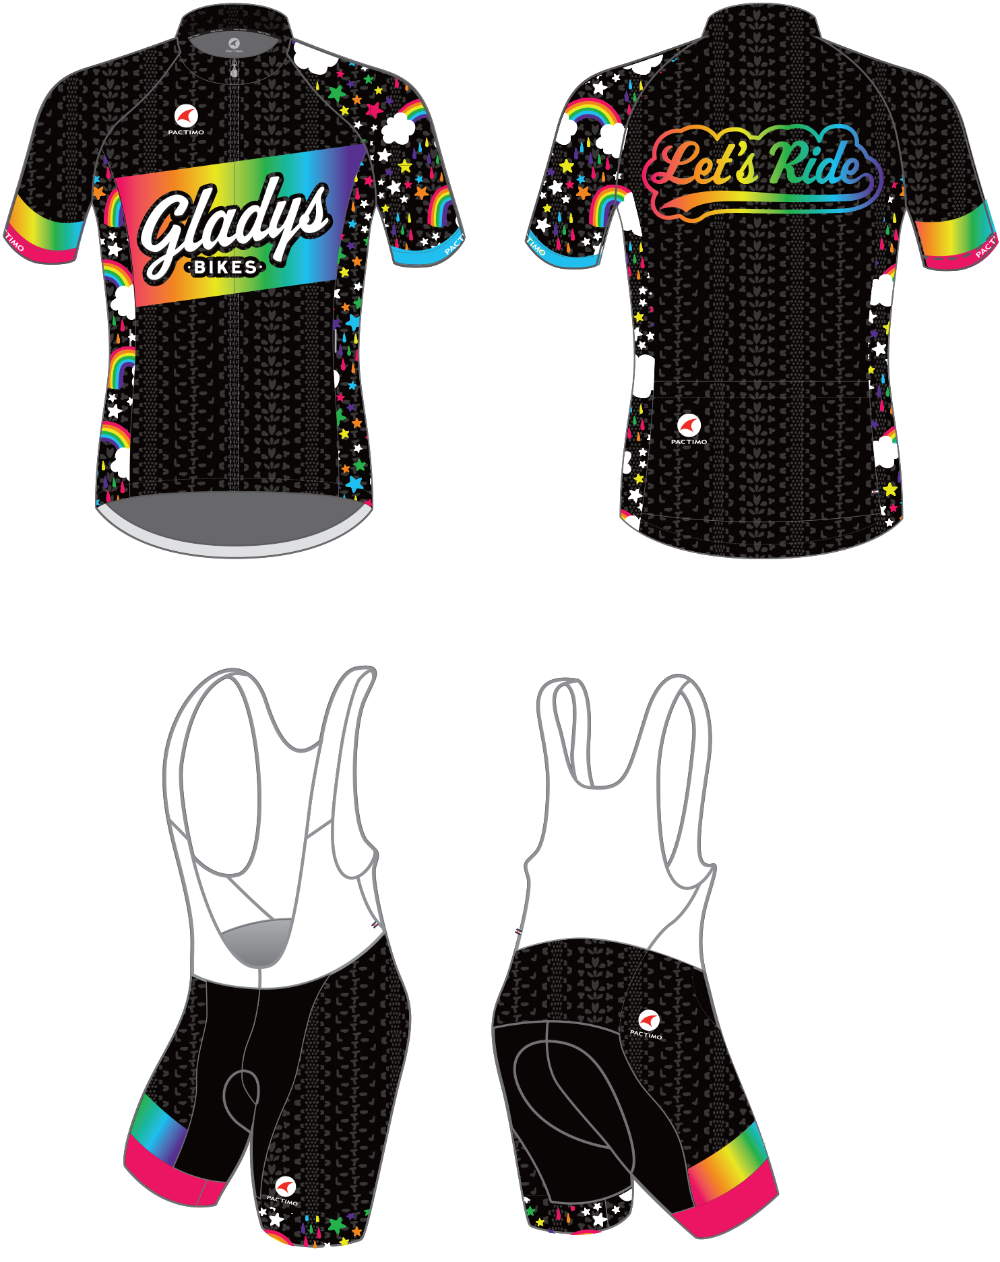 Mary Lytle Jersey Design Gladys Bikes 2019 Cycling Kit